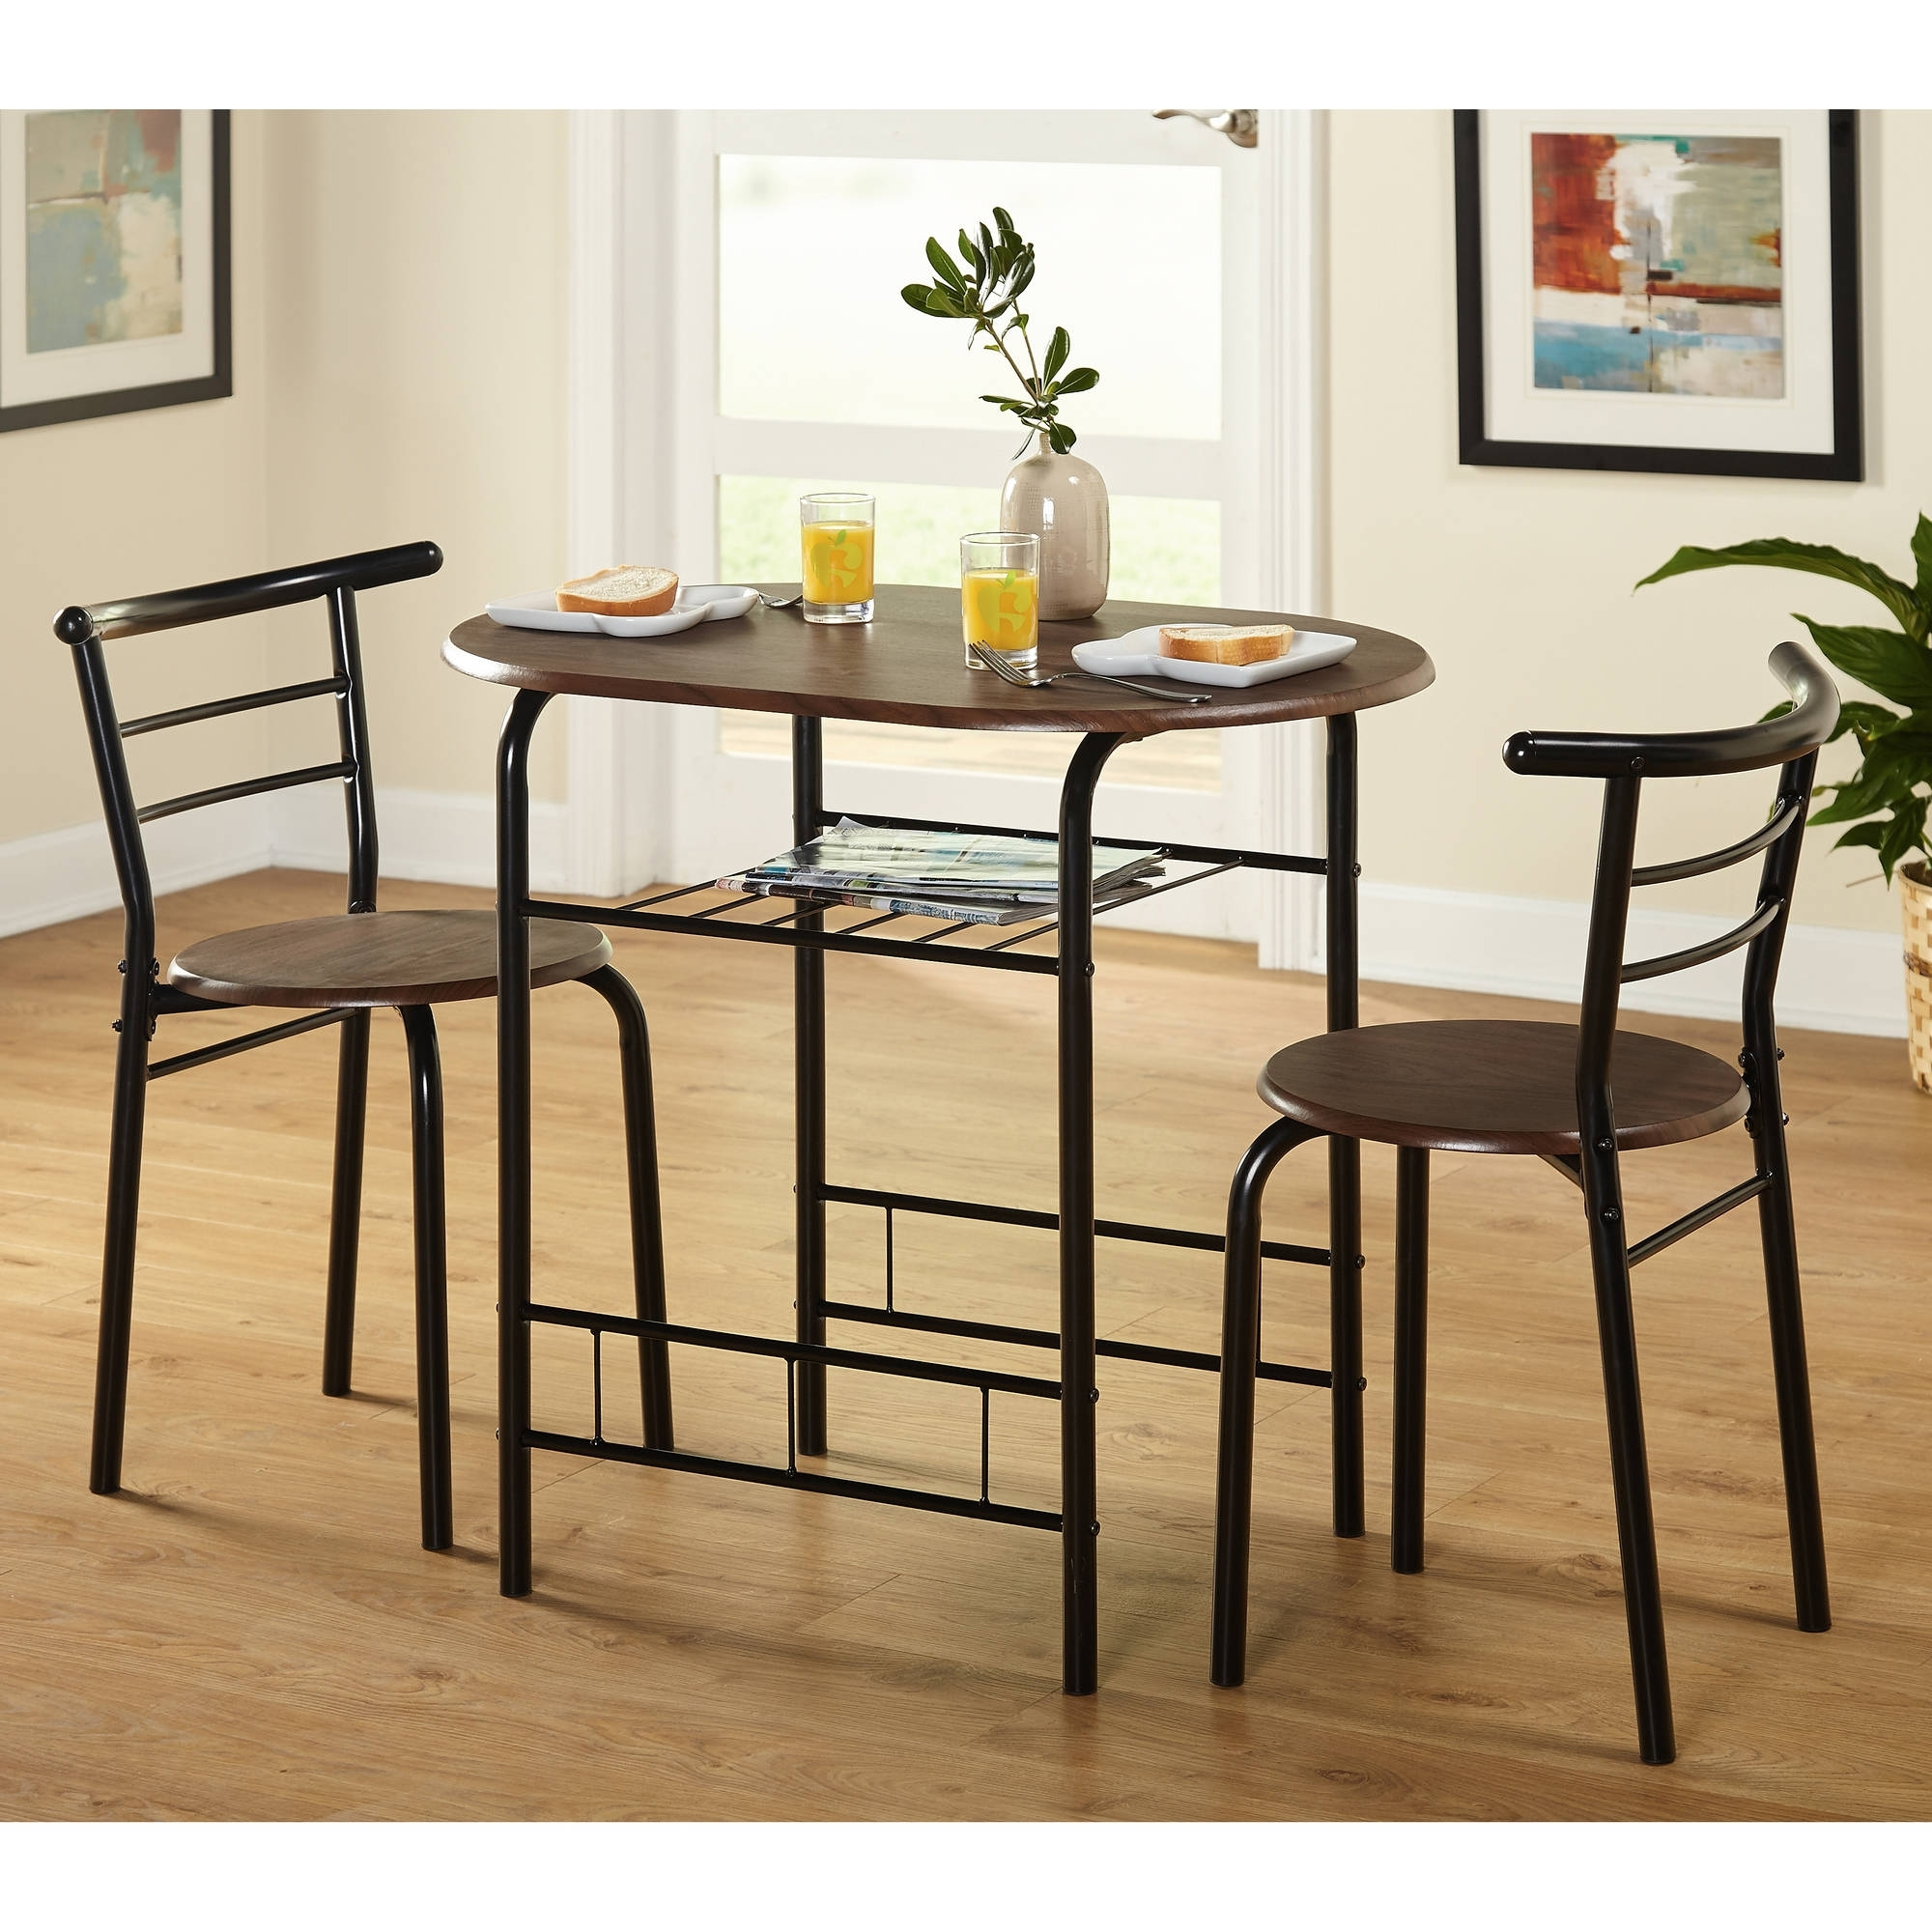 Popular Compact Dining Sets In Tms 3 Piece Bistro Dining Set – Walmart (View 11 of 25)